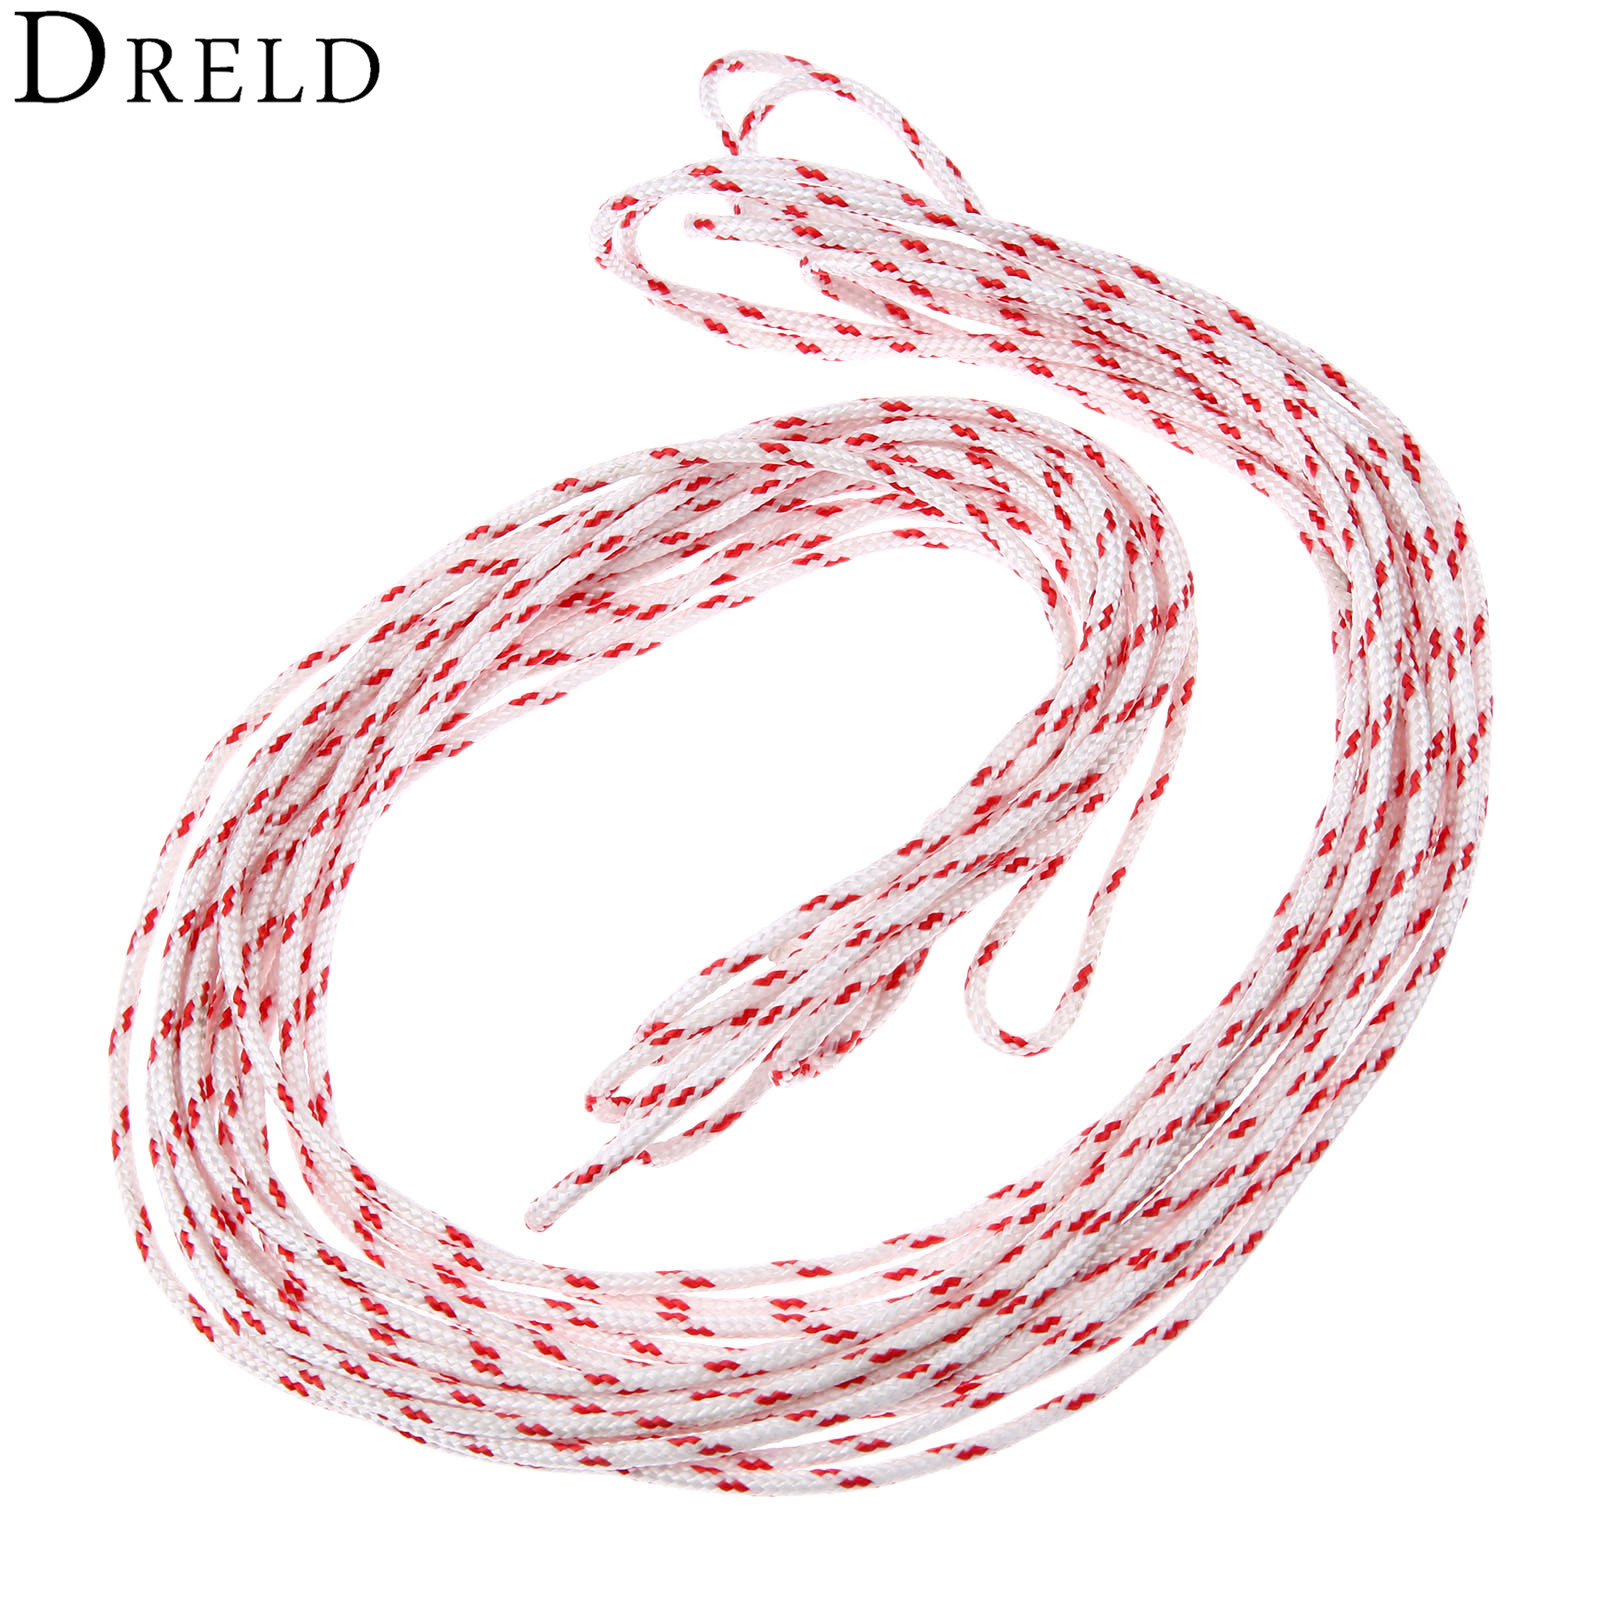 DRELD Chainsaw 10m Starter Pull Cord Rope For STIHL Chainsaw 017 018 019t Ms170 Ms180 Ms181 Ms210 Ms230 Ms250 Chainsaw Trimmers